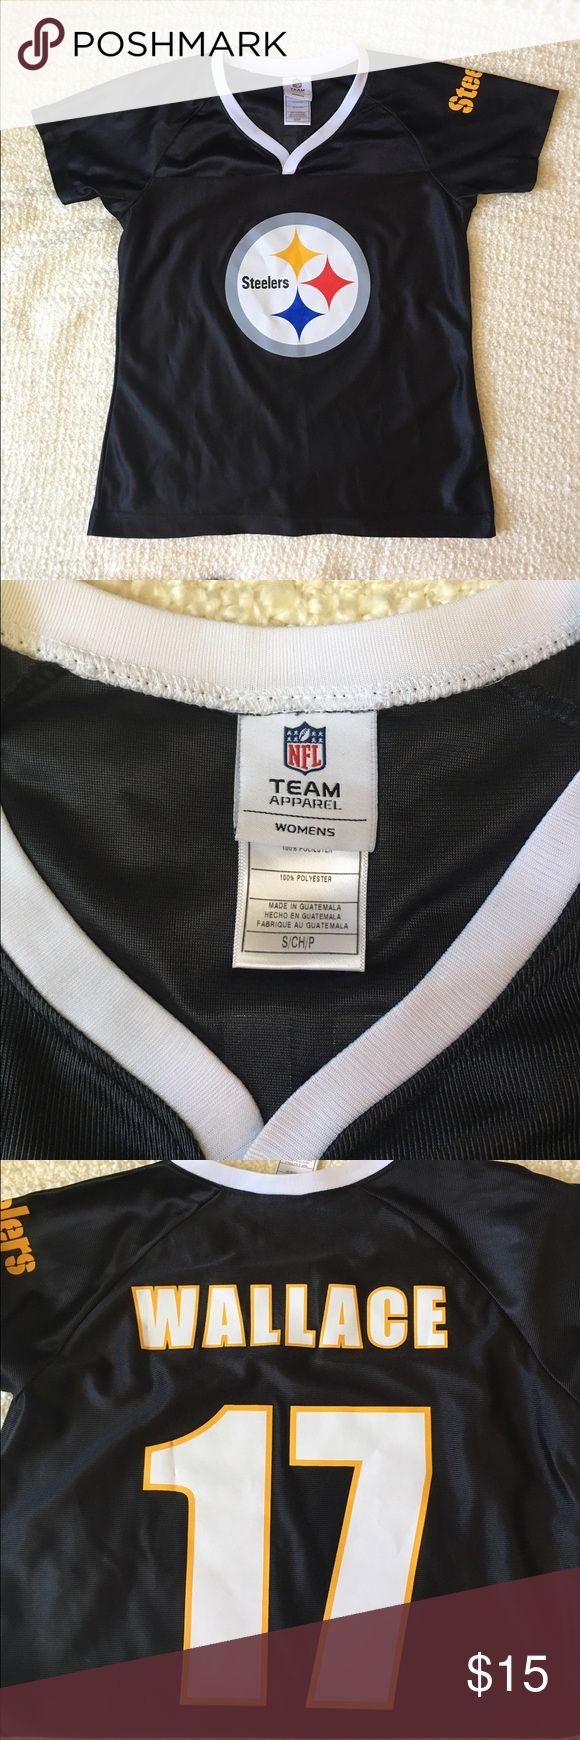 🏈NWOT WOMEN'S STEELER JERSEY Authentic NFL apparel throw back Wallace jersey. #17. NWOT. No smoking home. NFL TEAM APPAREL  Tops Tees - Short Sleeve